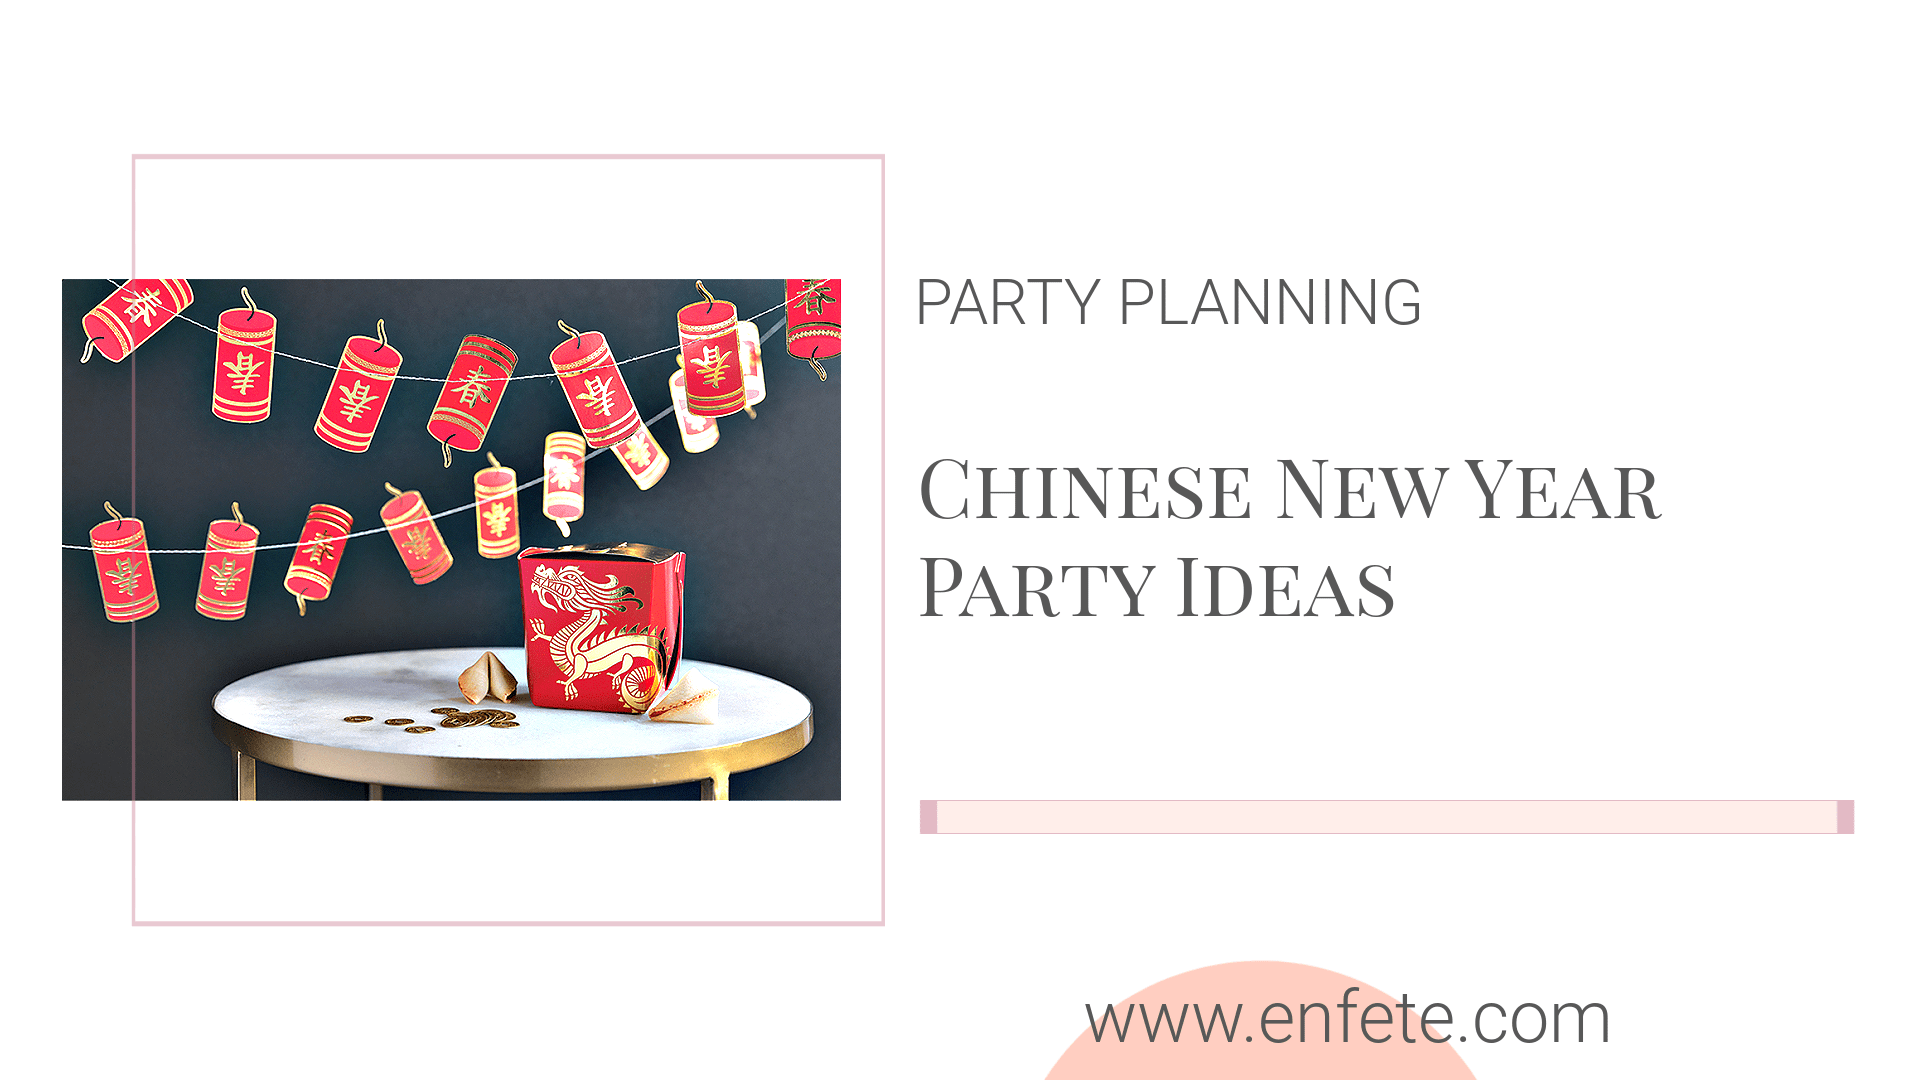 Chinese New Year 2021 Party Ideas for the Year of the Ox